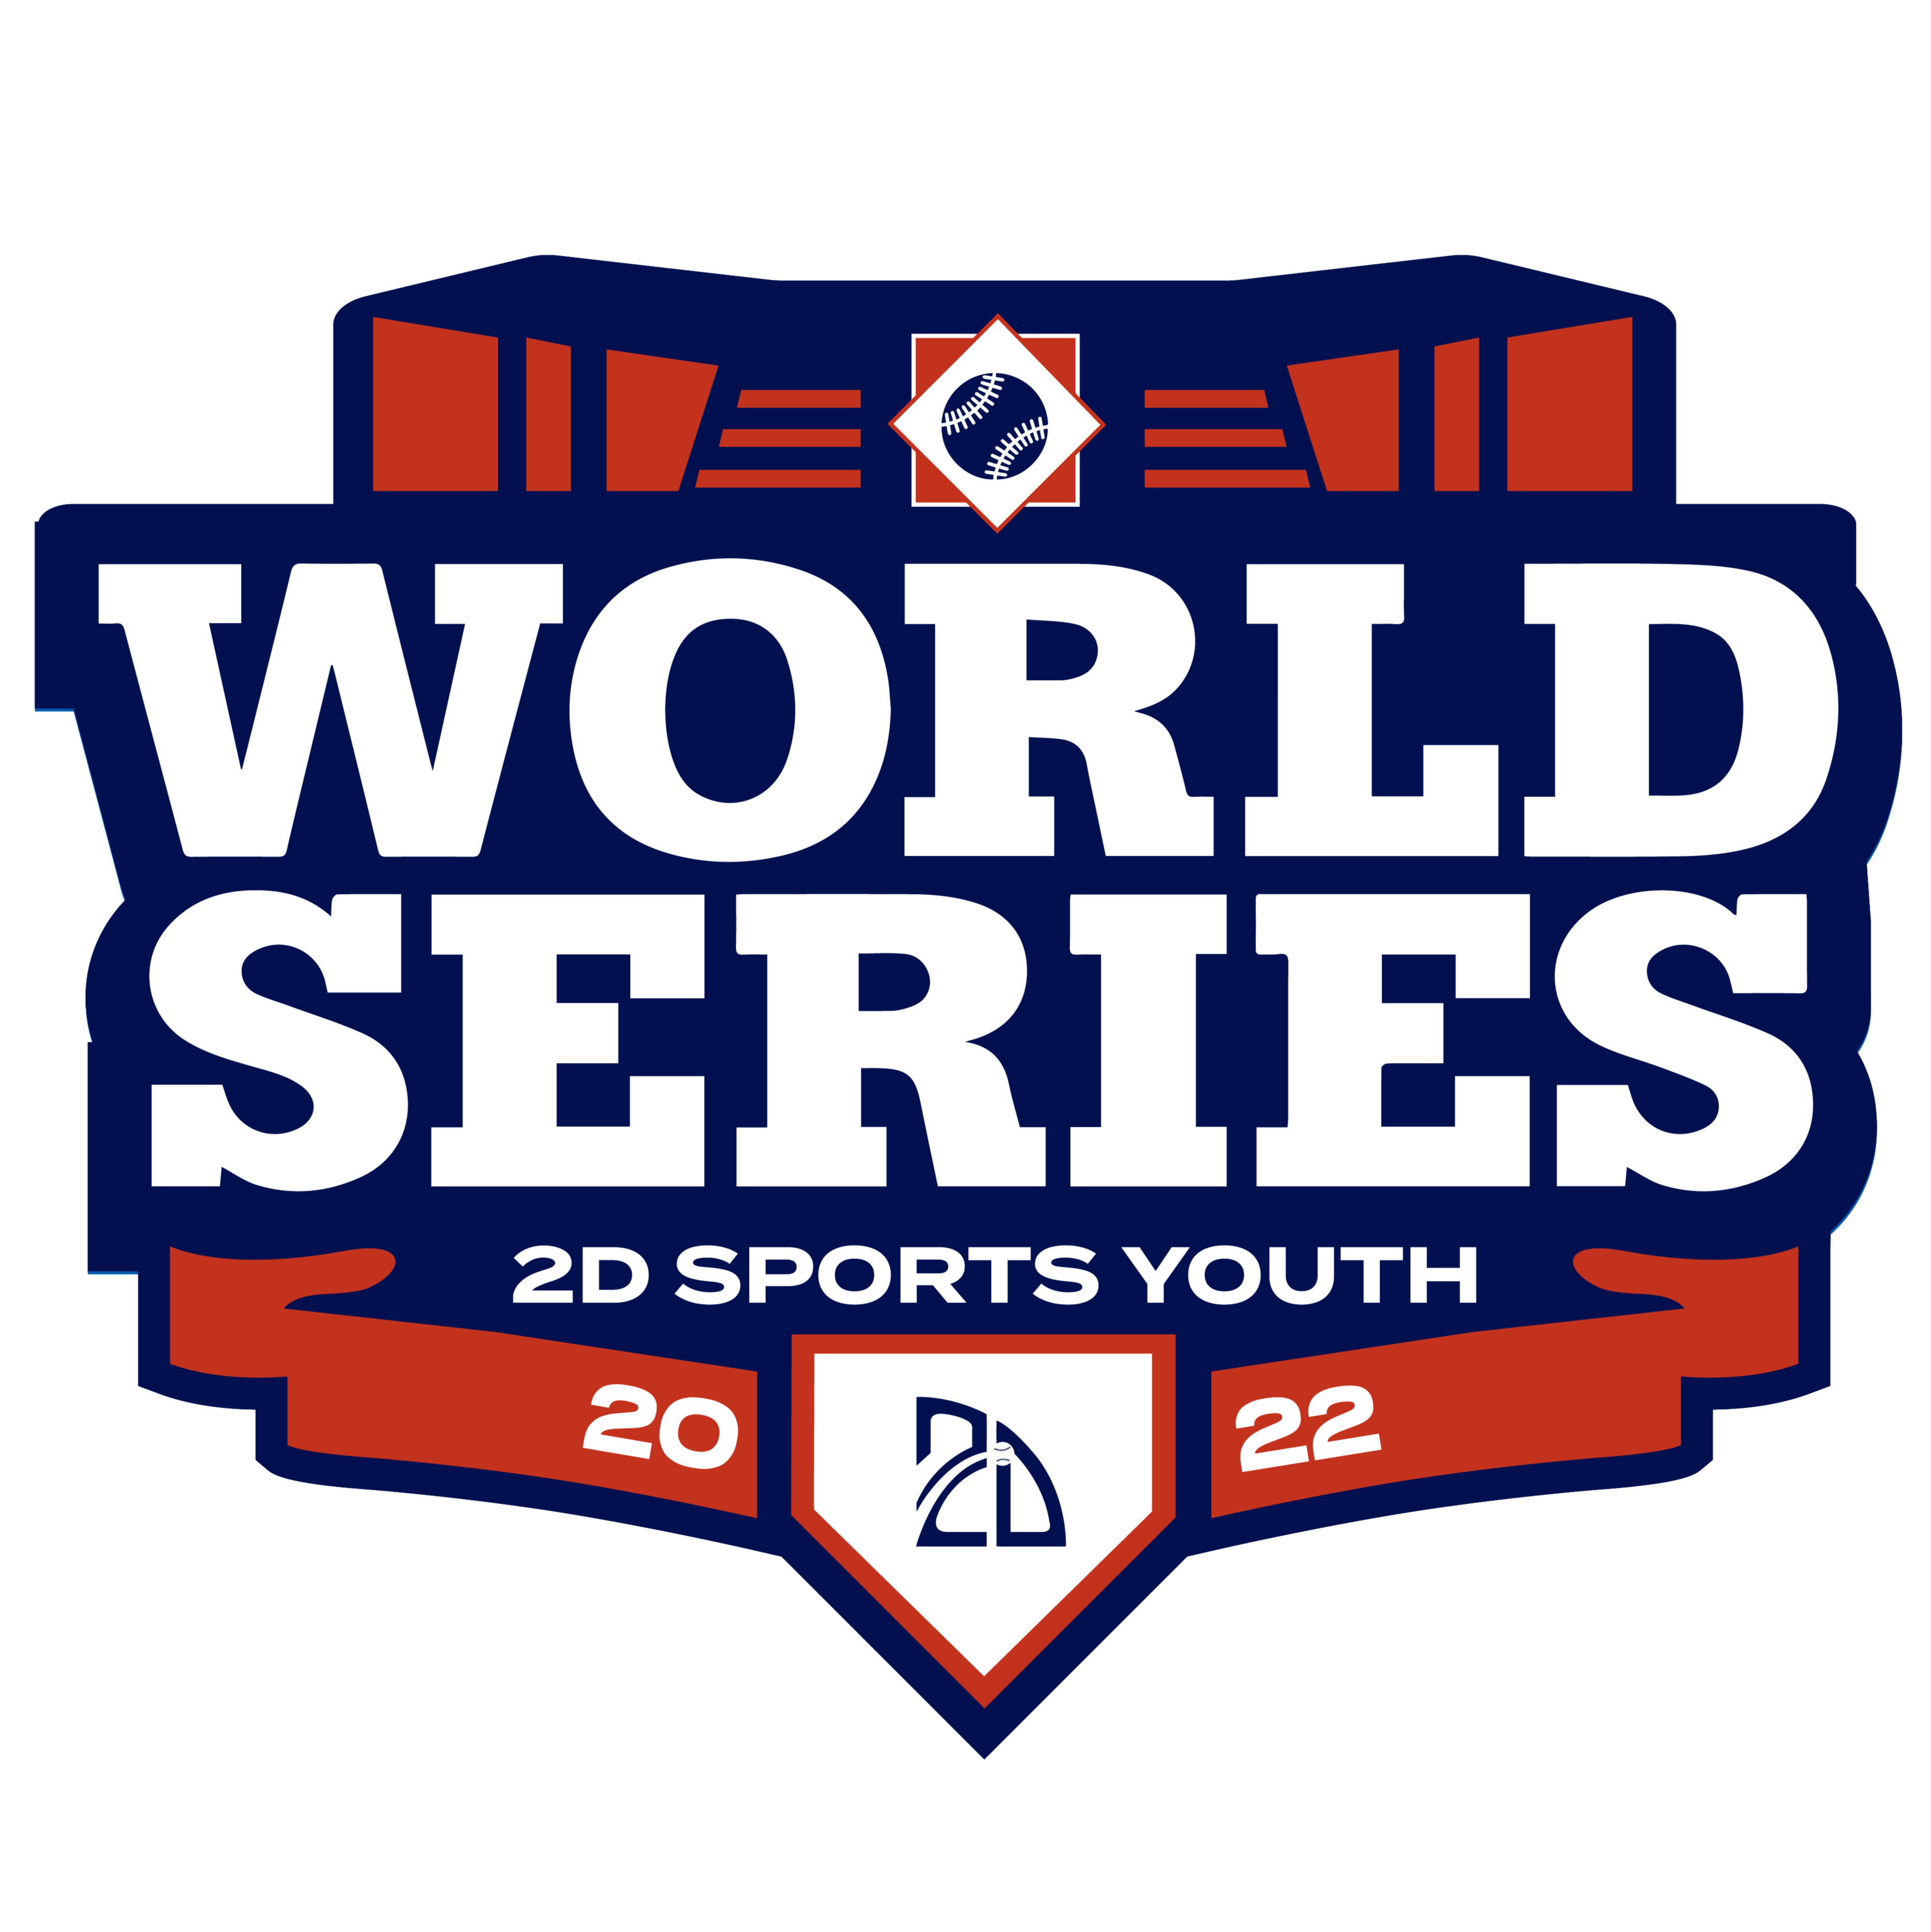 2D Youth World Series II - Powered by Marucci